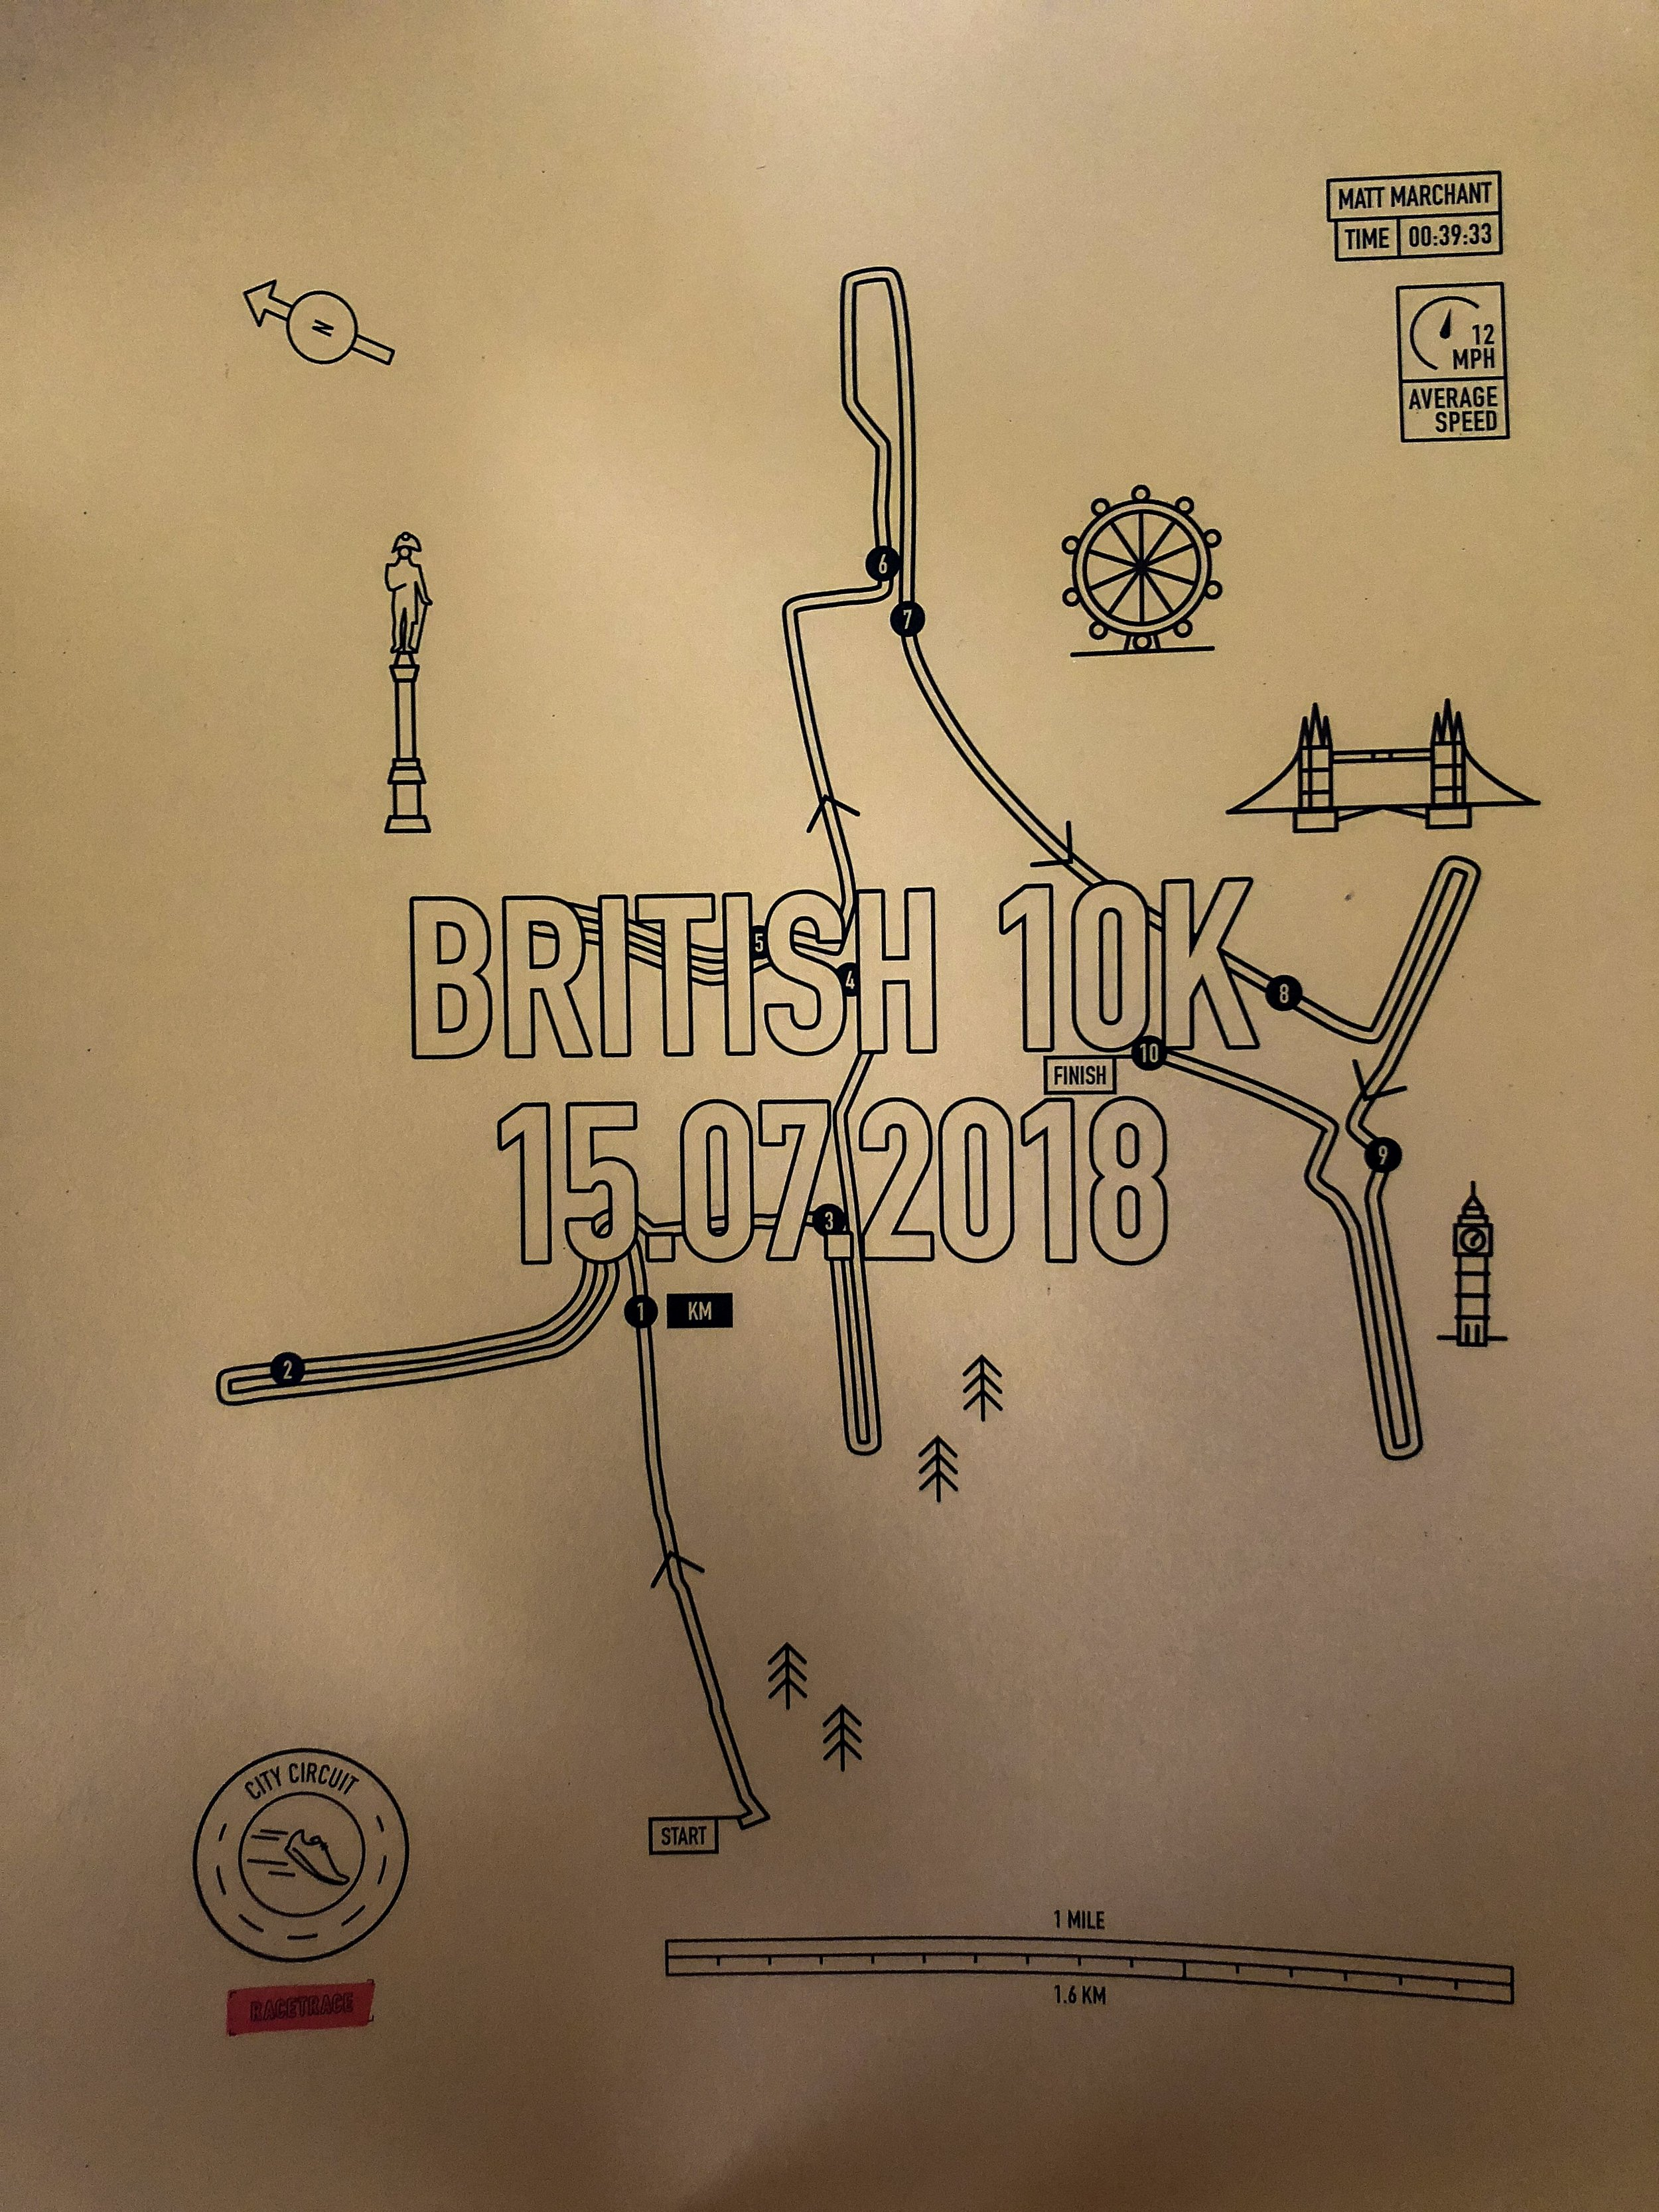 British 10k - How awesome is this gold print from Racetrace www.racetrace.co.uk